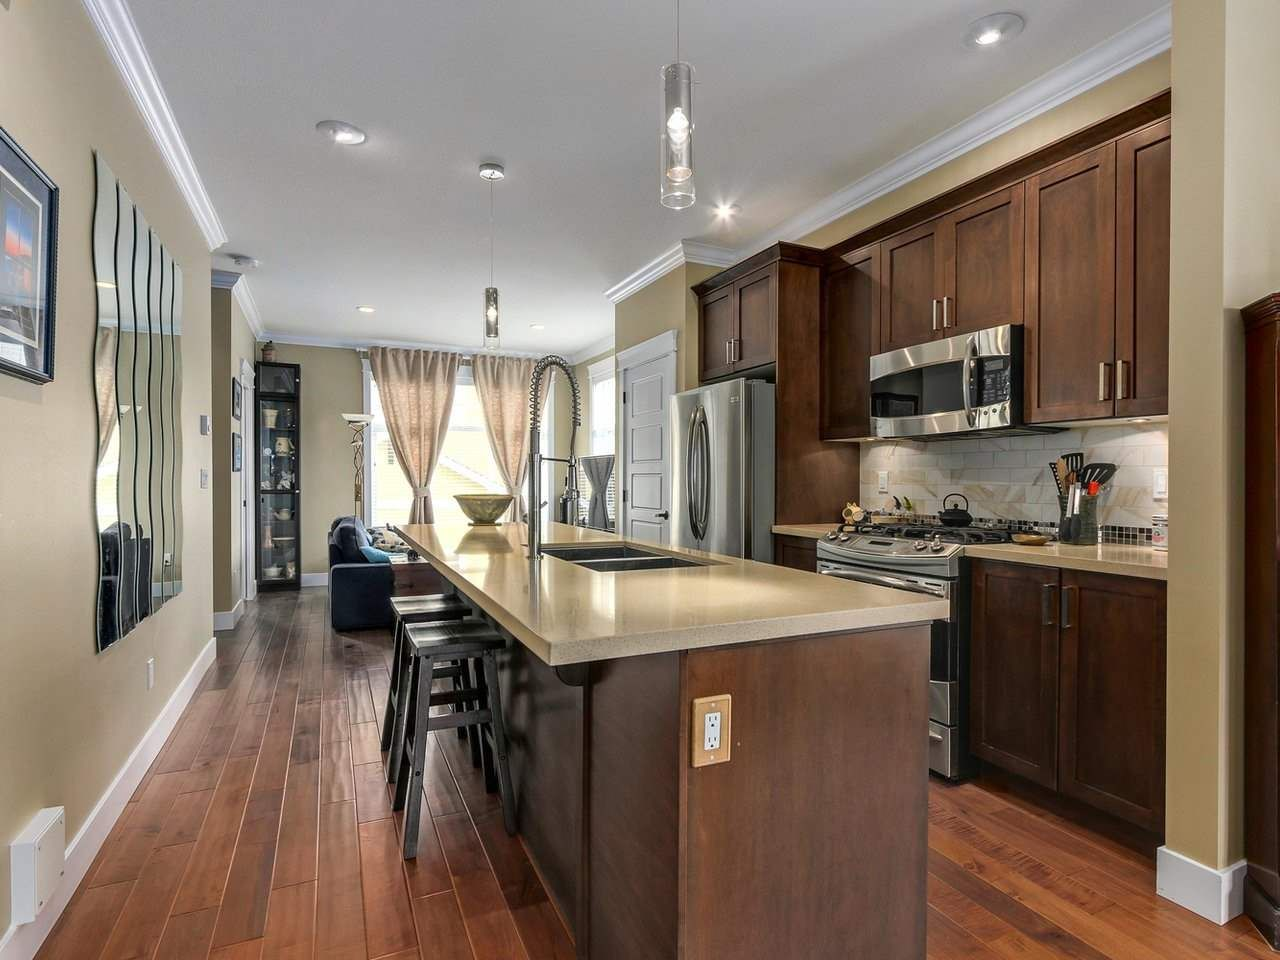 """Photo 5: Photos: 31 17171 2B Avenue in Surrey: Pacific Douglas Townhouse for sale in """"AUGUSTA TOWNHOUSES"""" (South Surrey White Rock)  : MLS®# R2280398"""